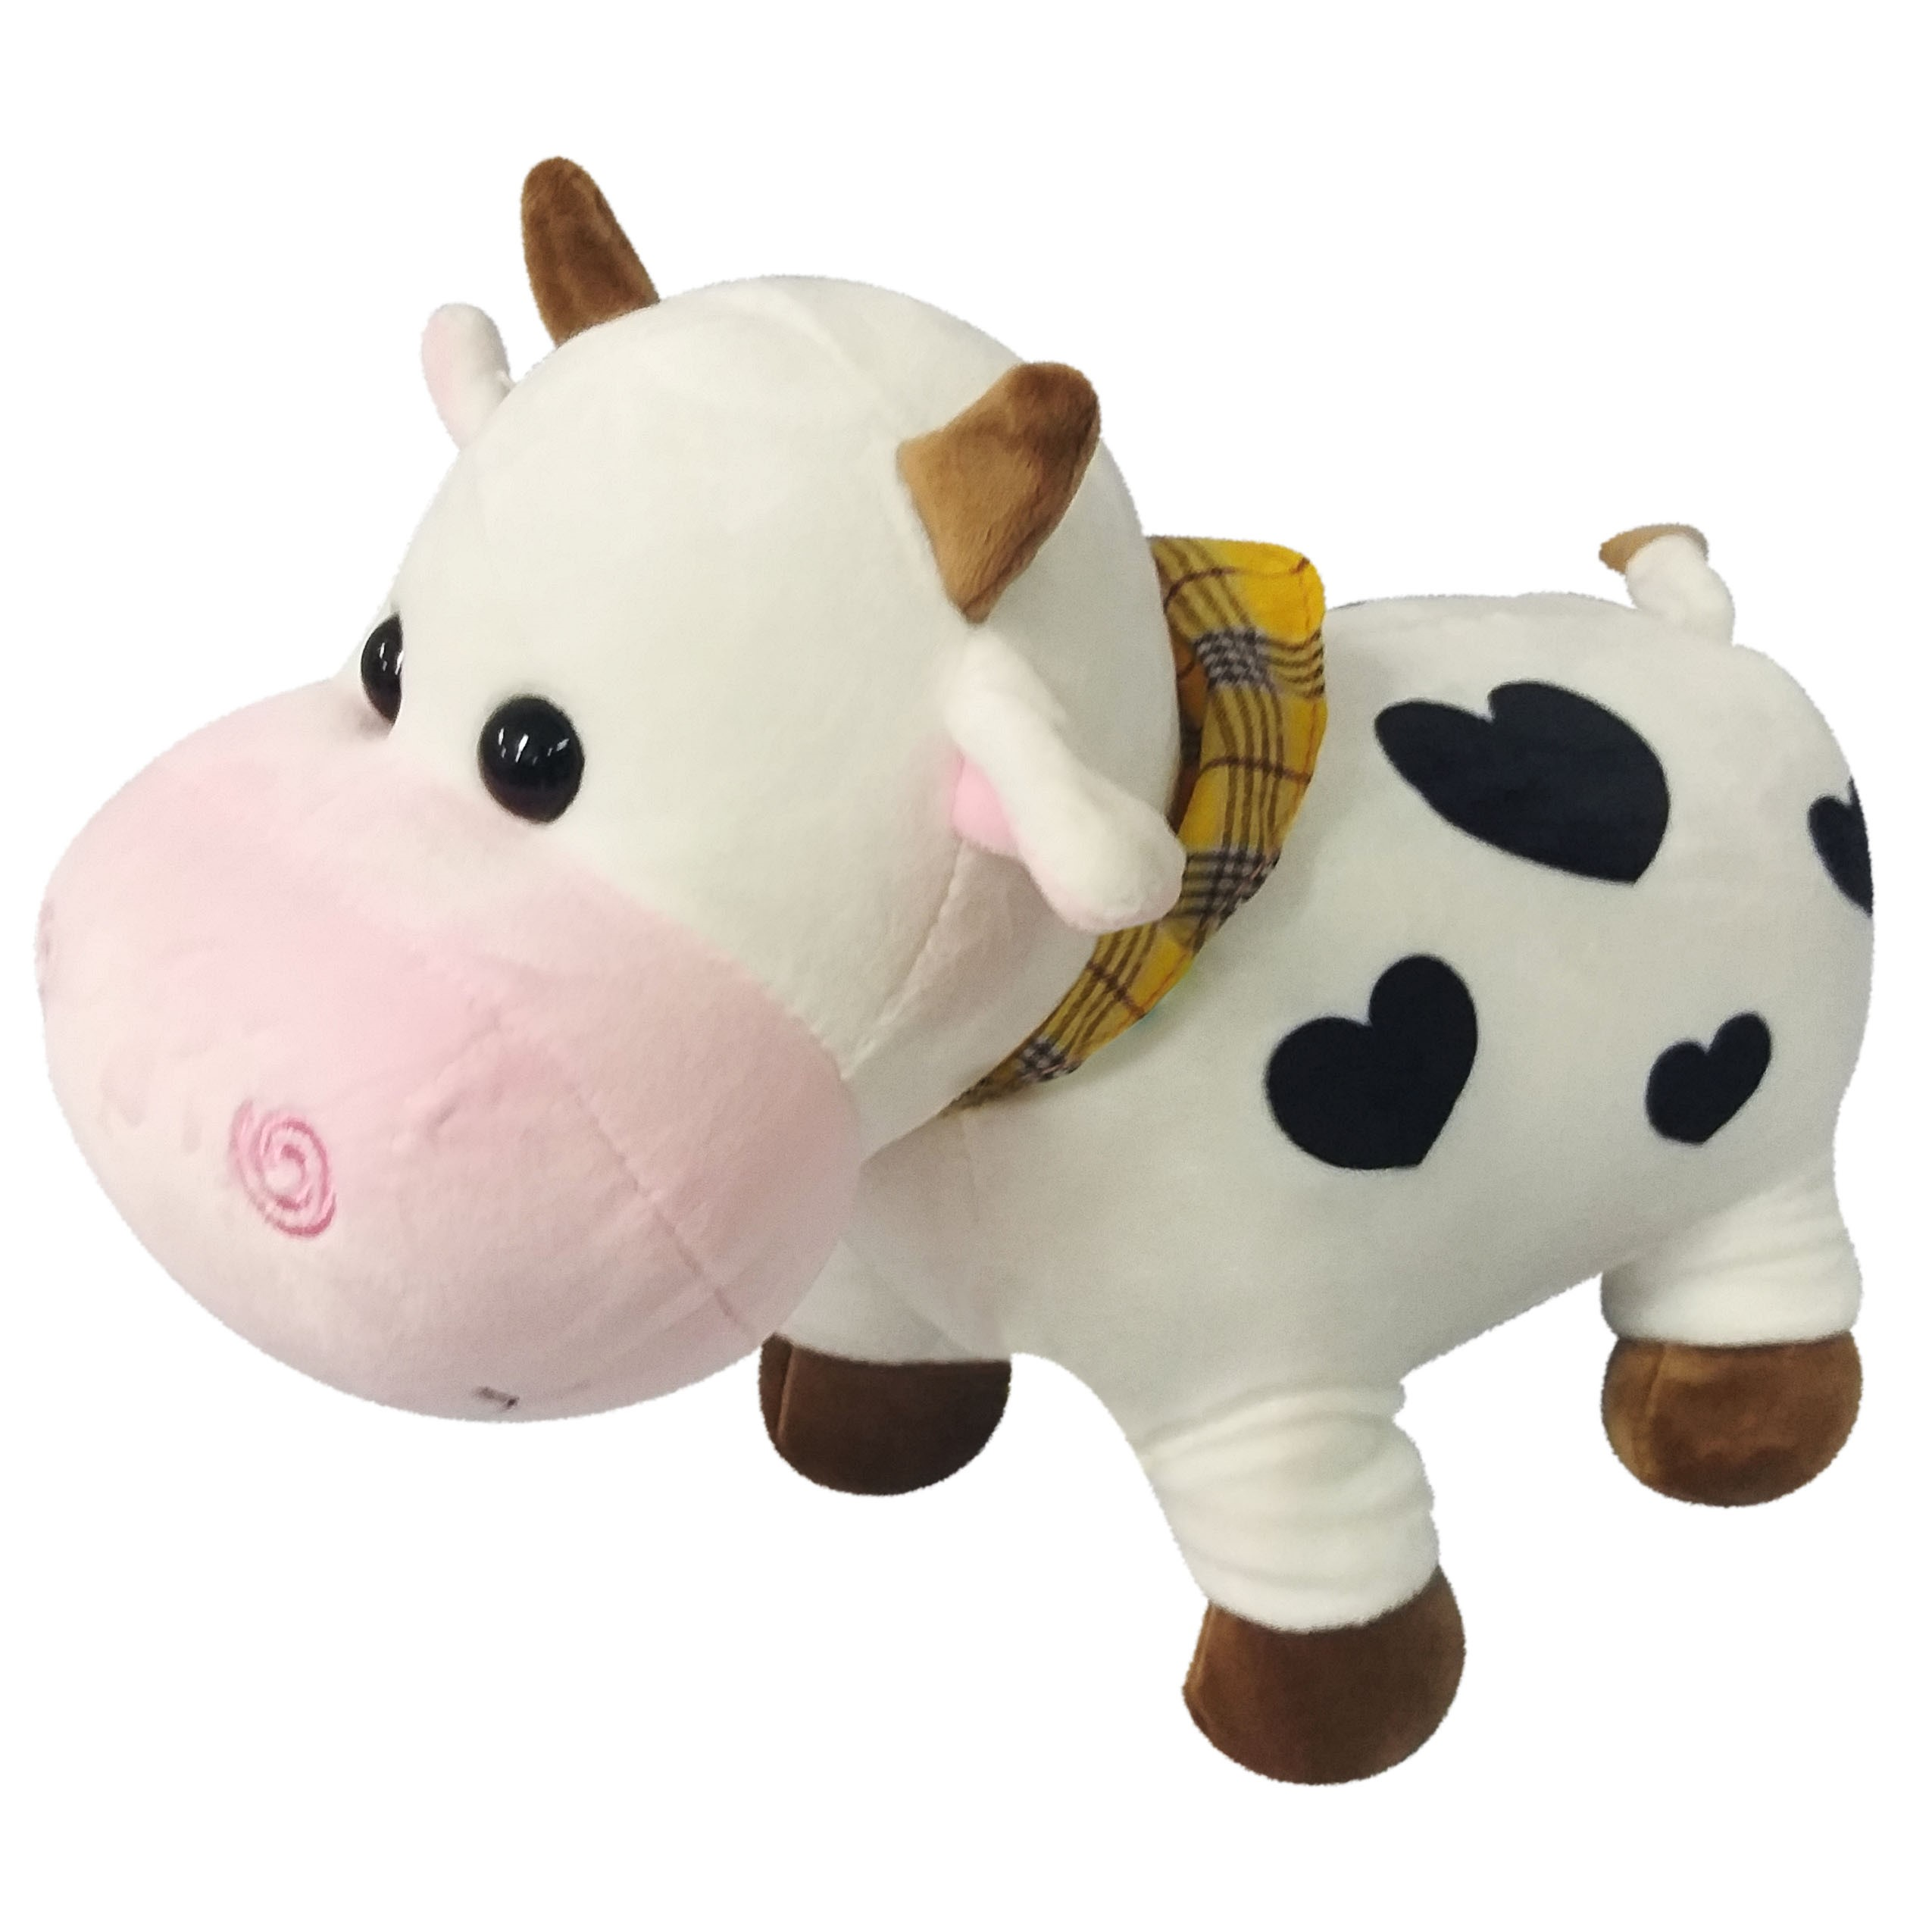 Fun ways Toy Kingdom welcomes the Year of the Ox